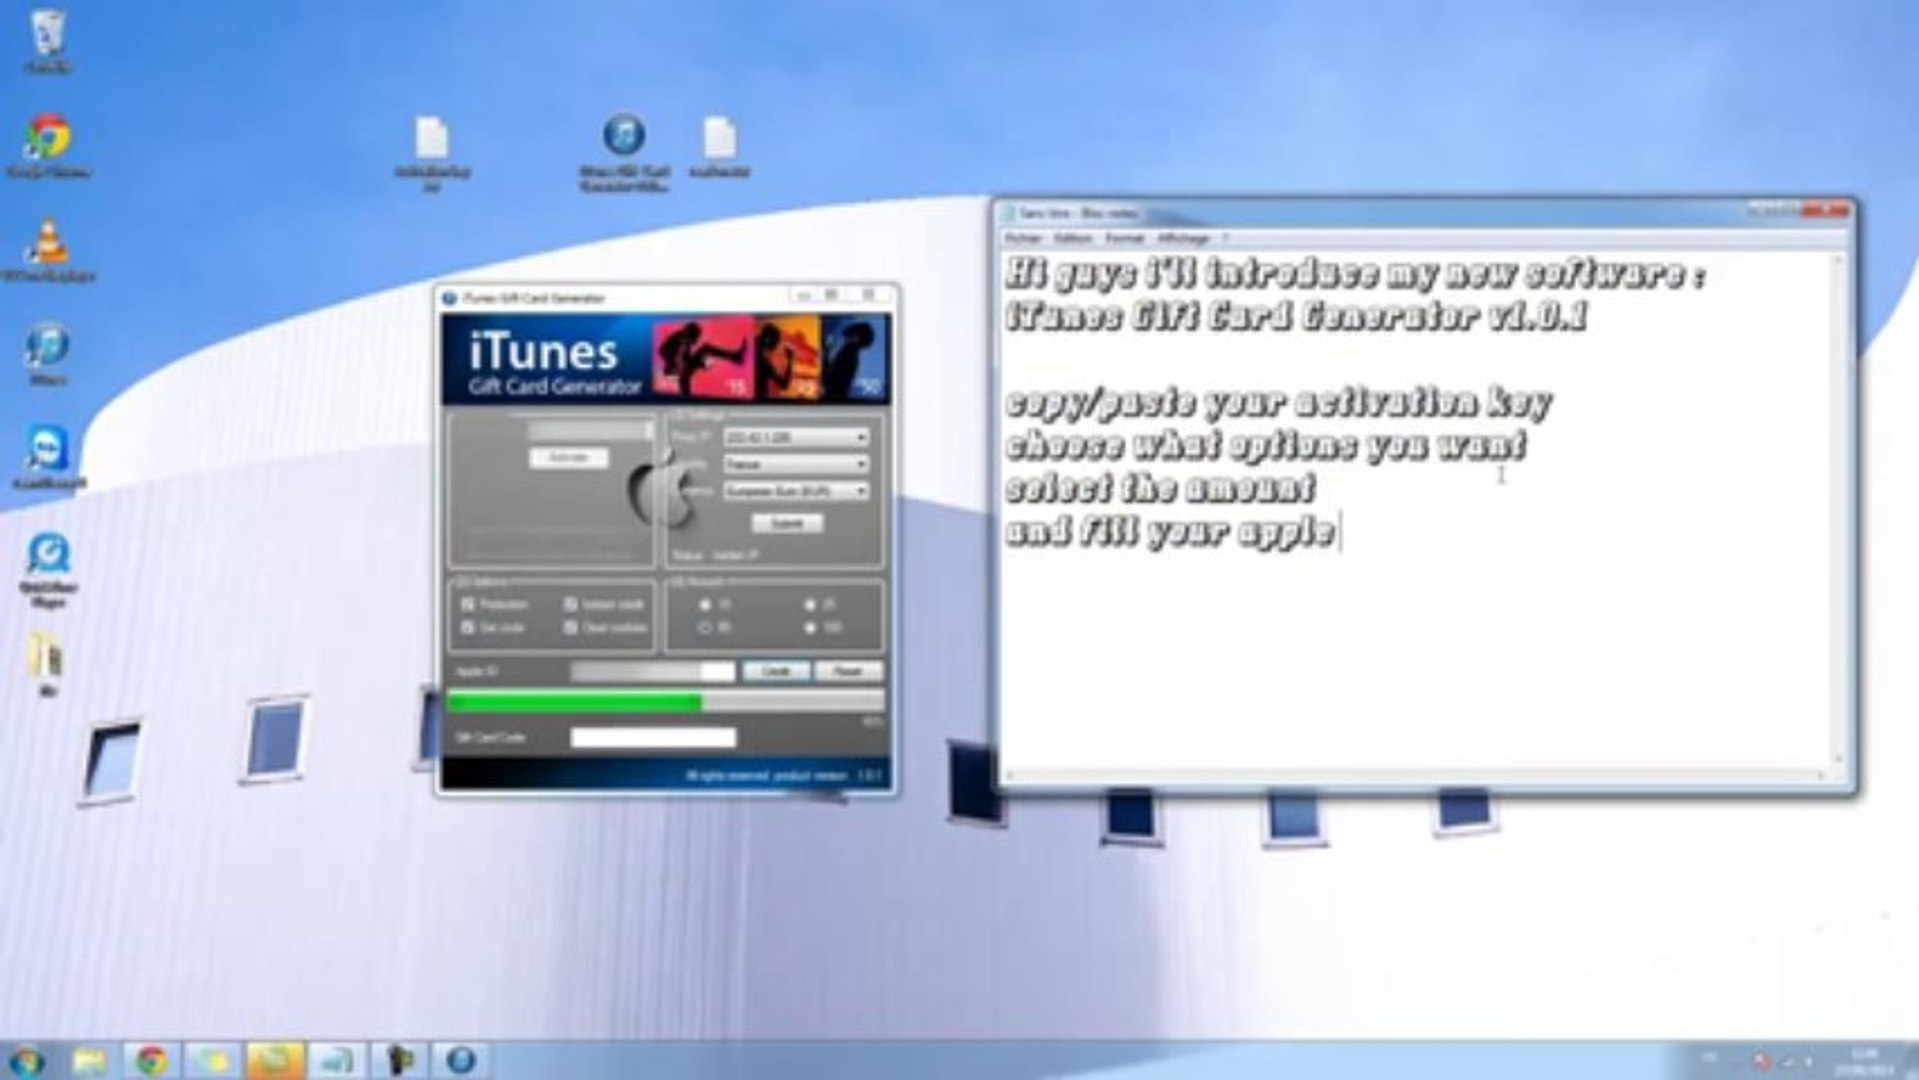 How To Get Free iTunes Gift Card Codes 2013 - iTunes Gift Card Generator 2013 Updated (AUGUST 2013)